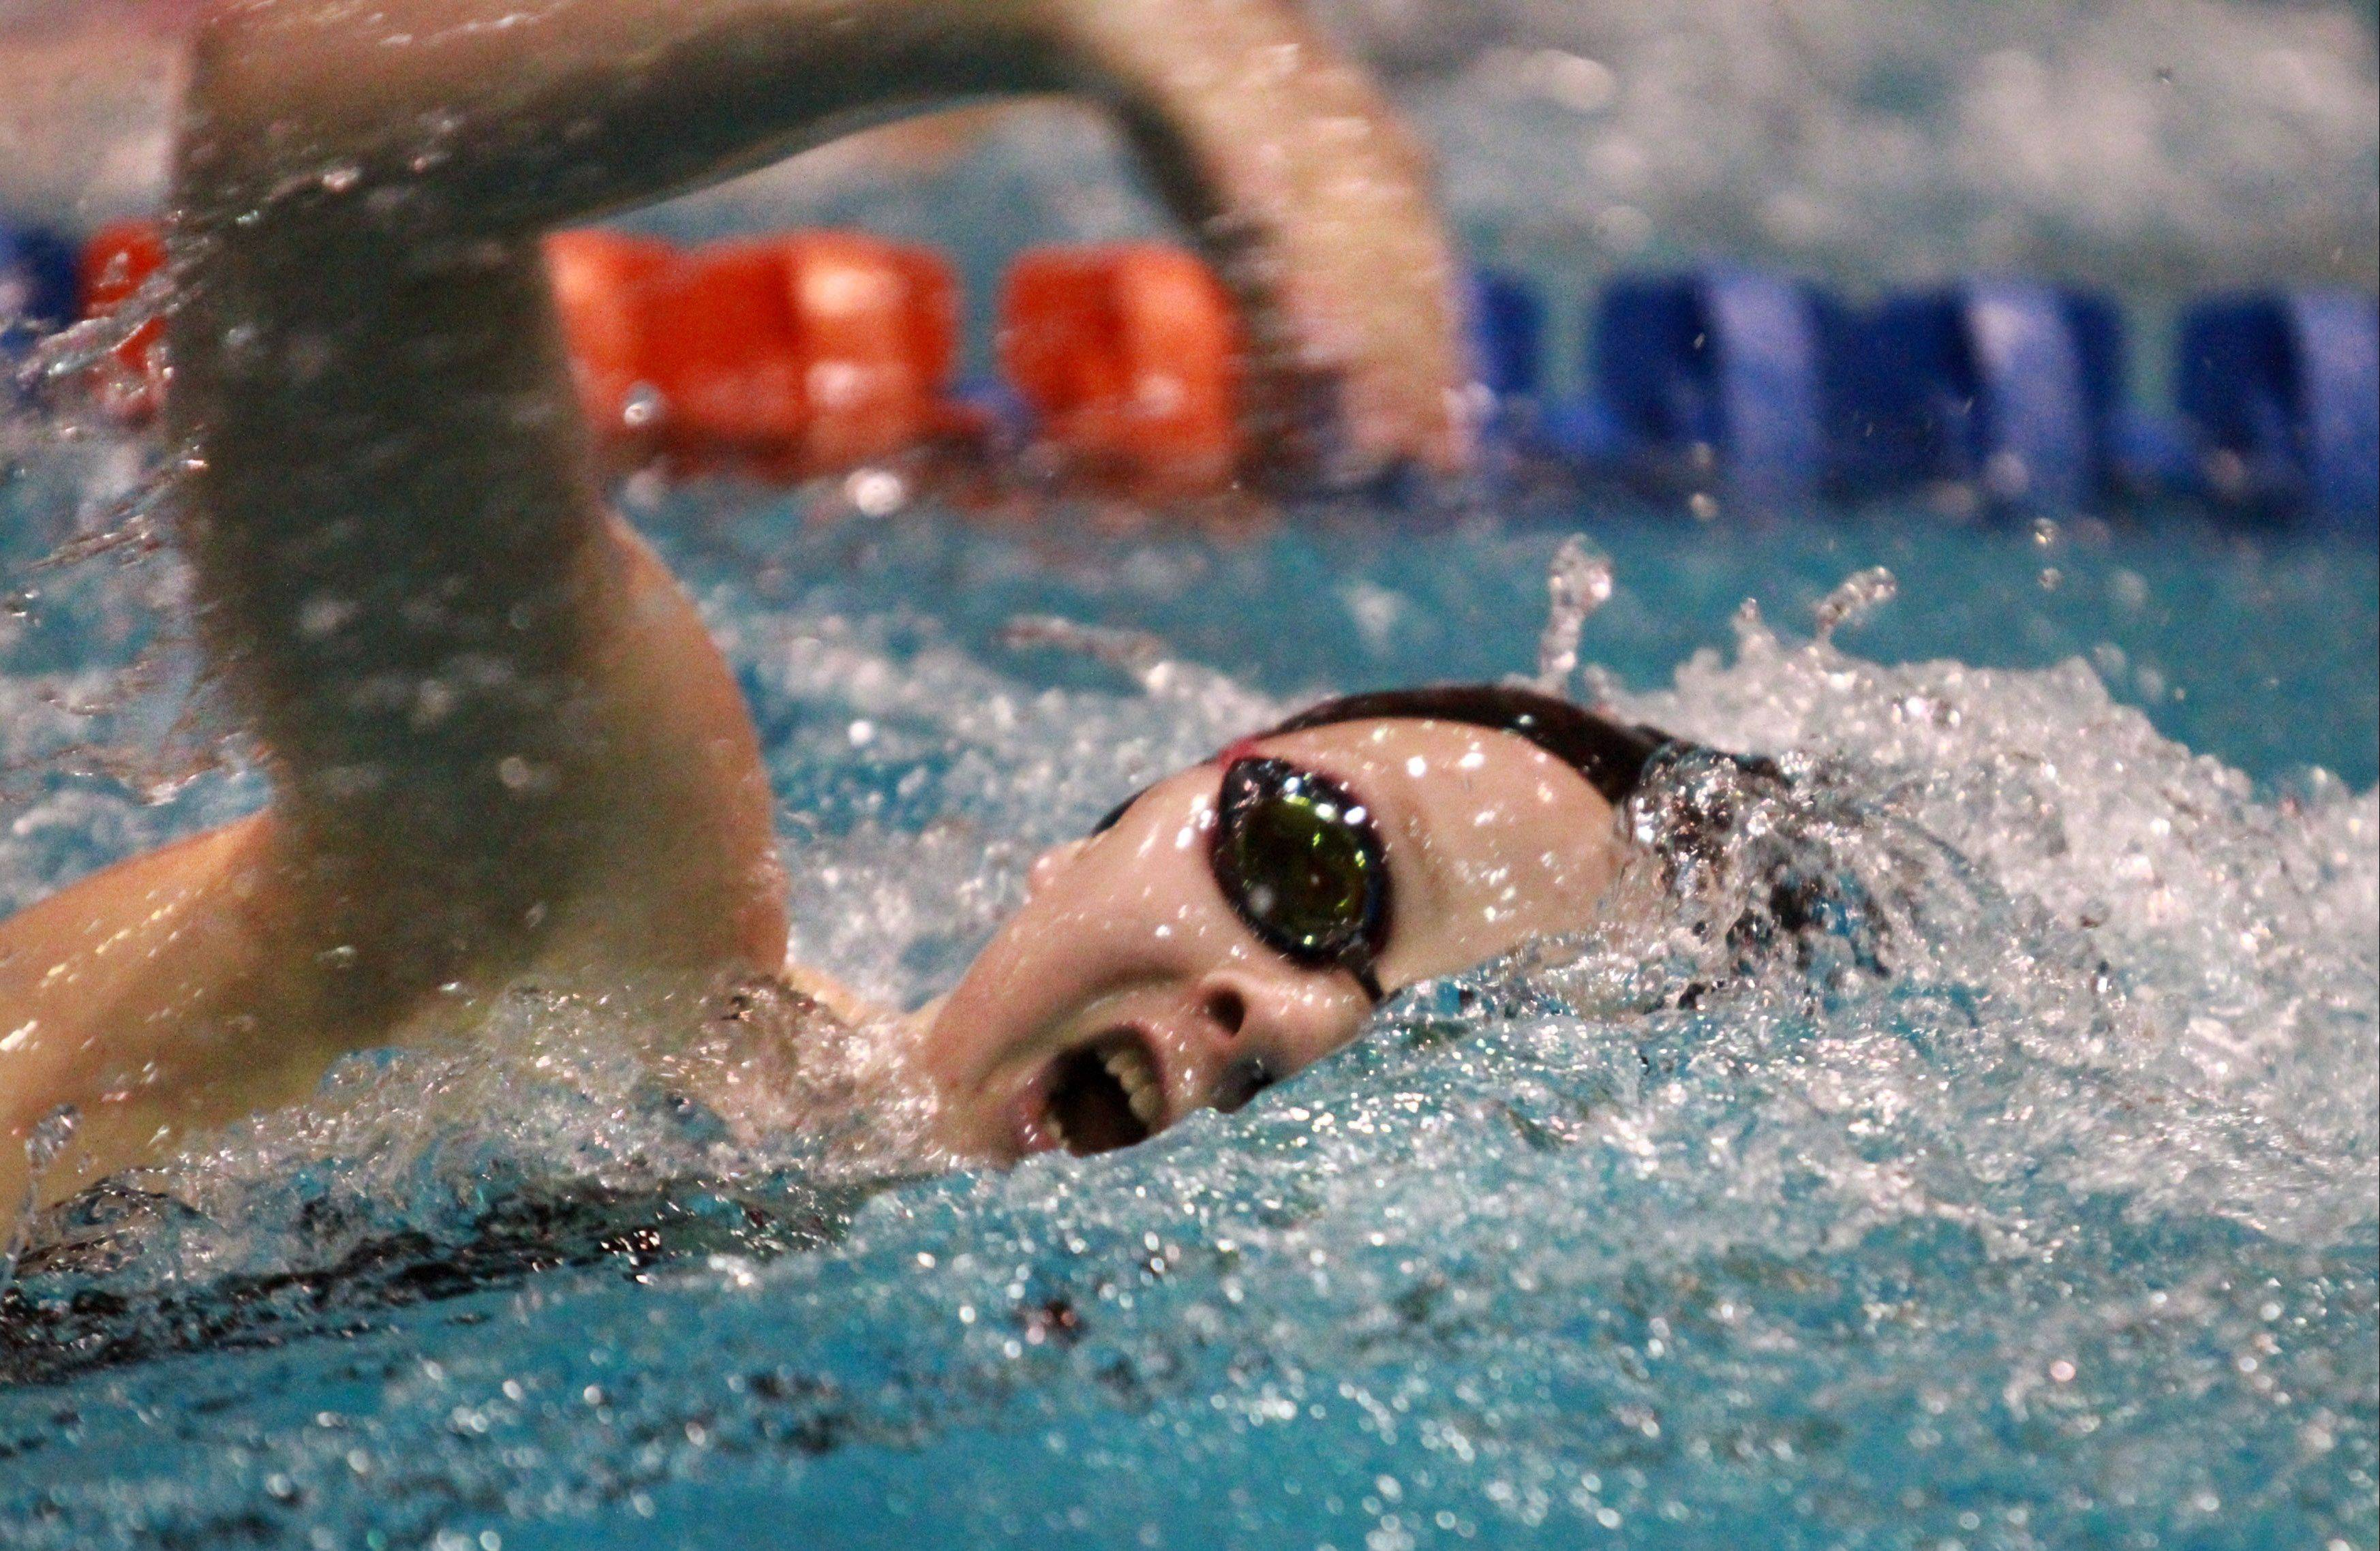 St. Charles East's Mary Snyder placed 11th in the 200-yard freestyle at the state championships in Evanston on Saturday.